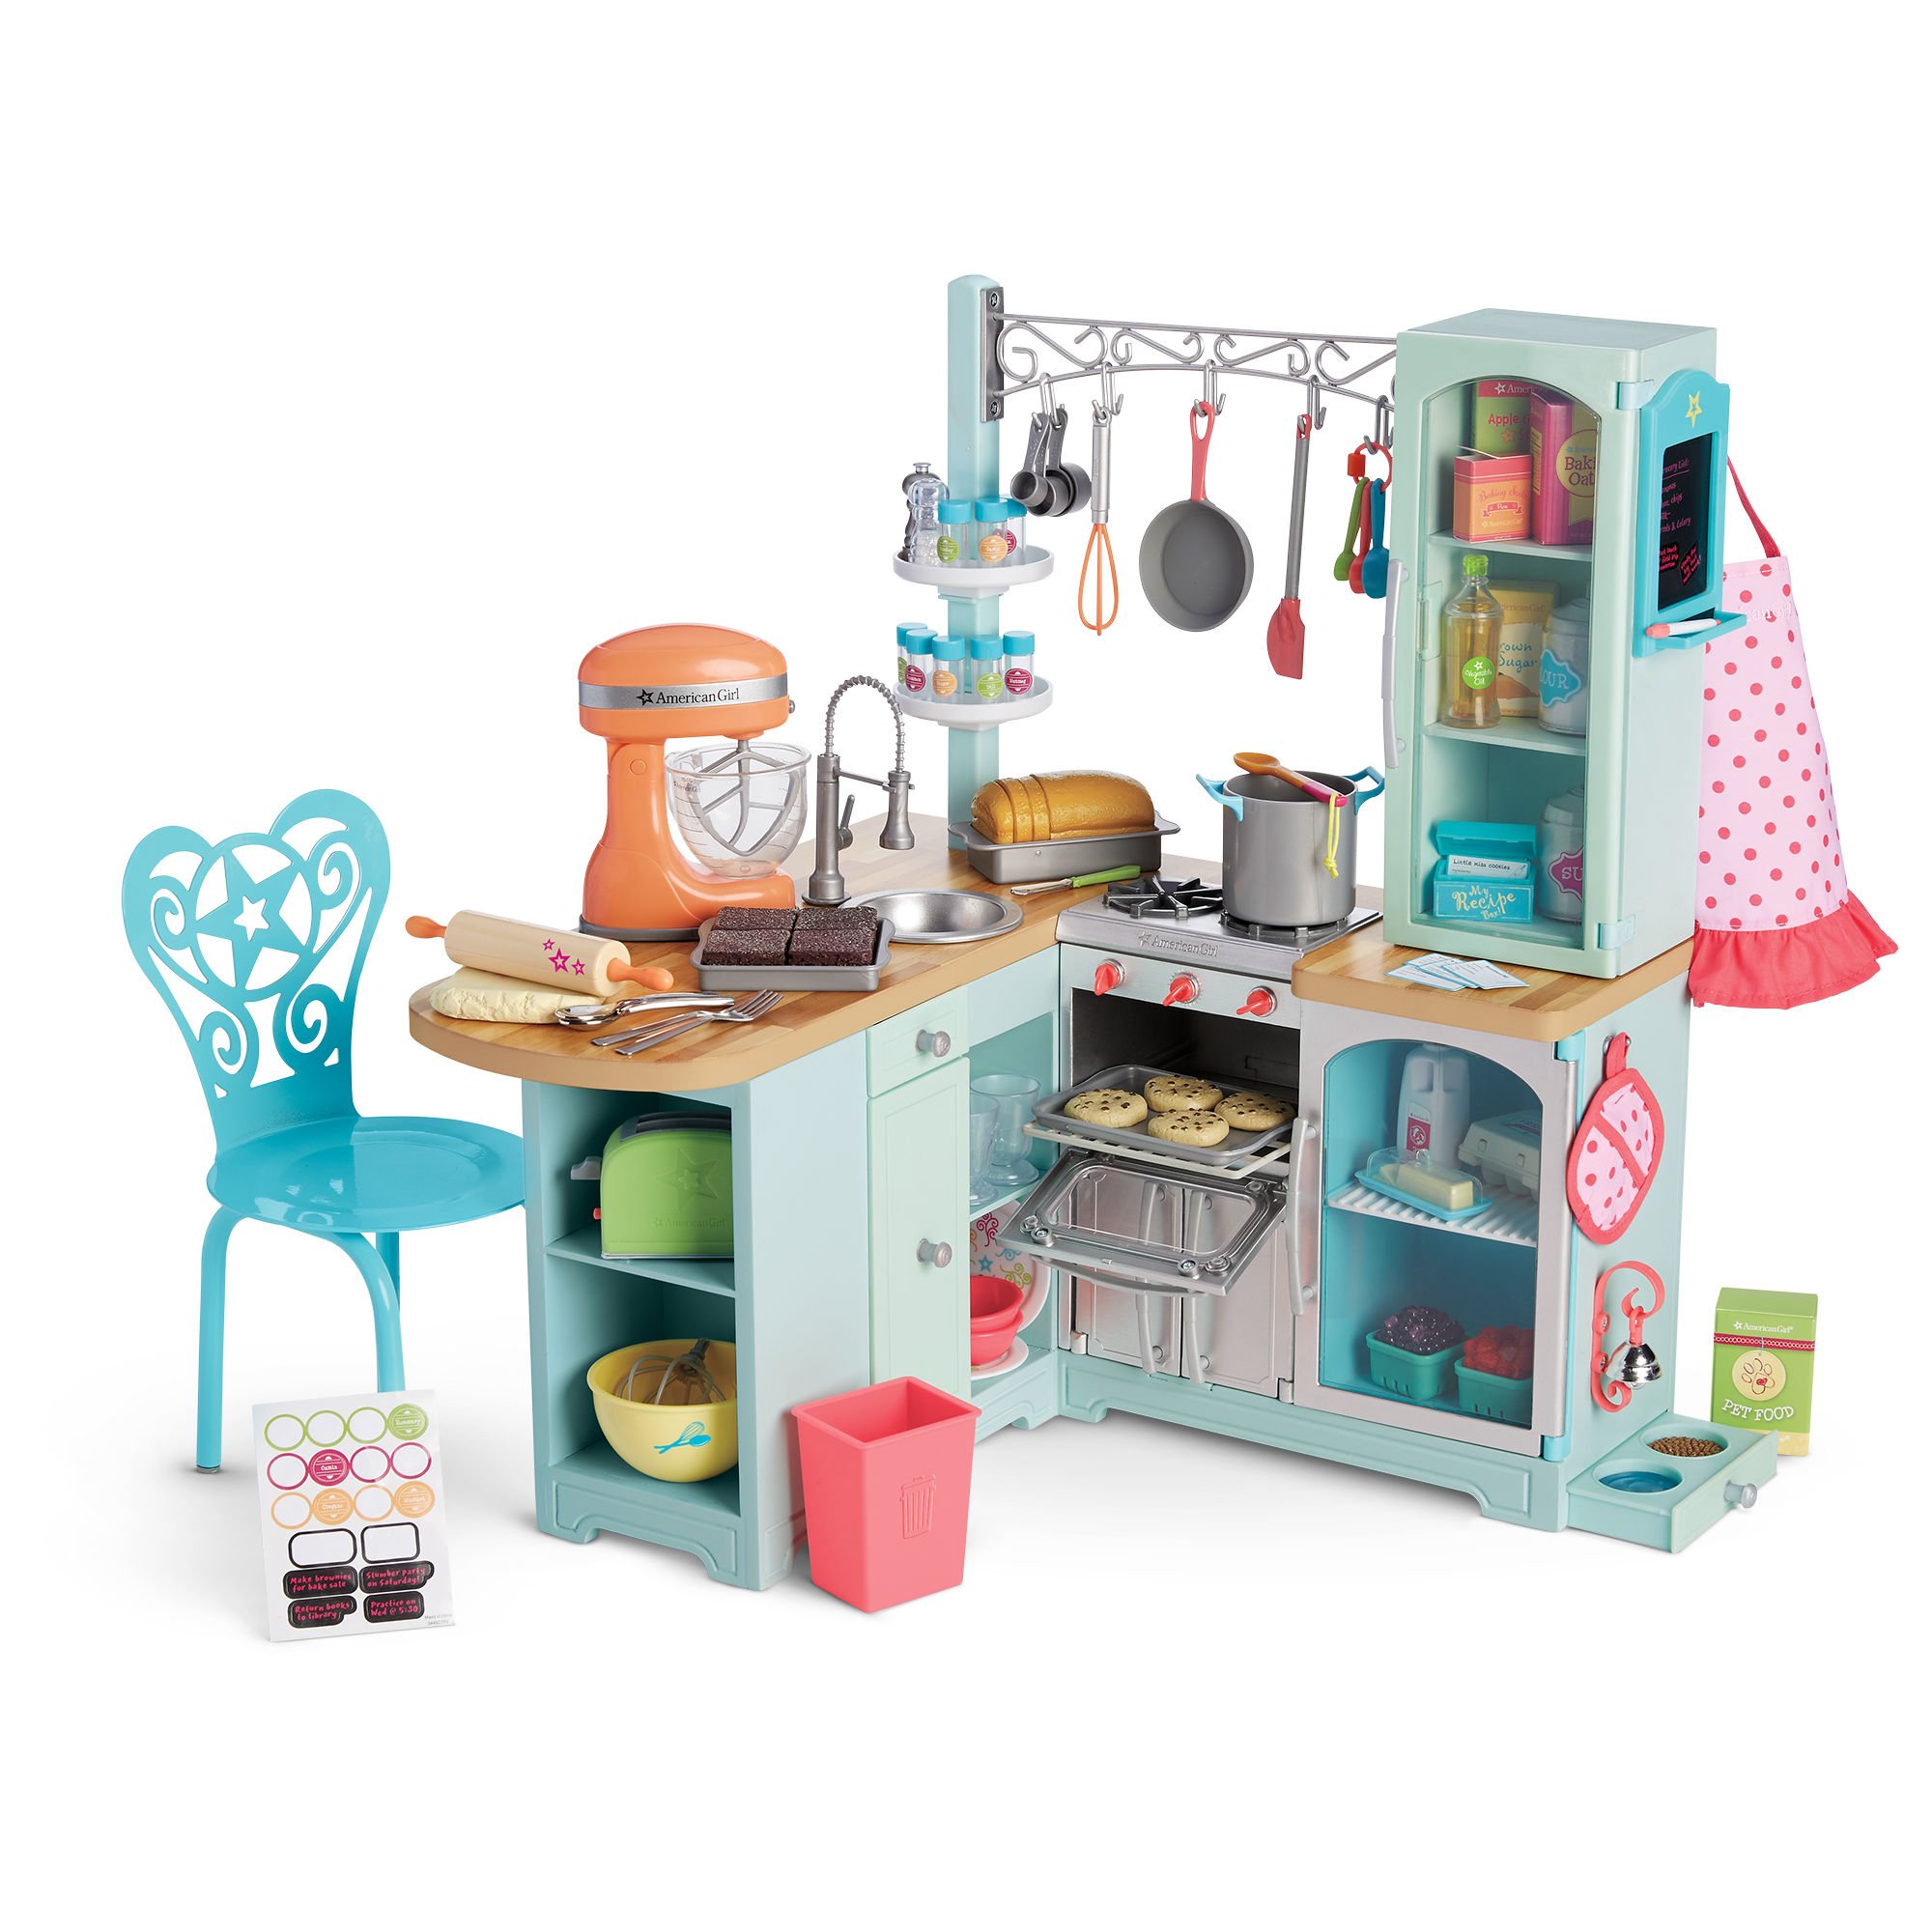 American Girl Doll Furniture Png - Gourmet Kitchen Set | American Girl Wiki | FANDOM powered by Wikia